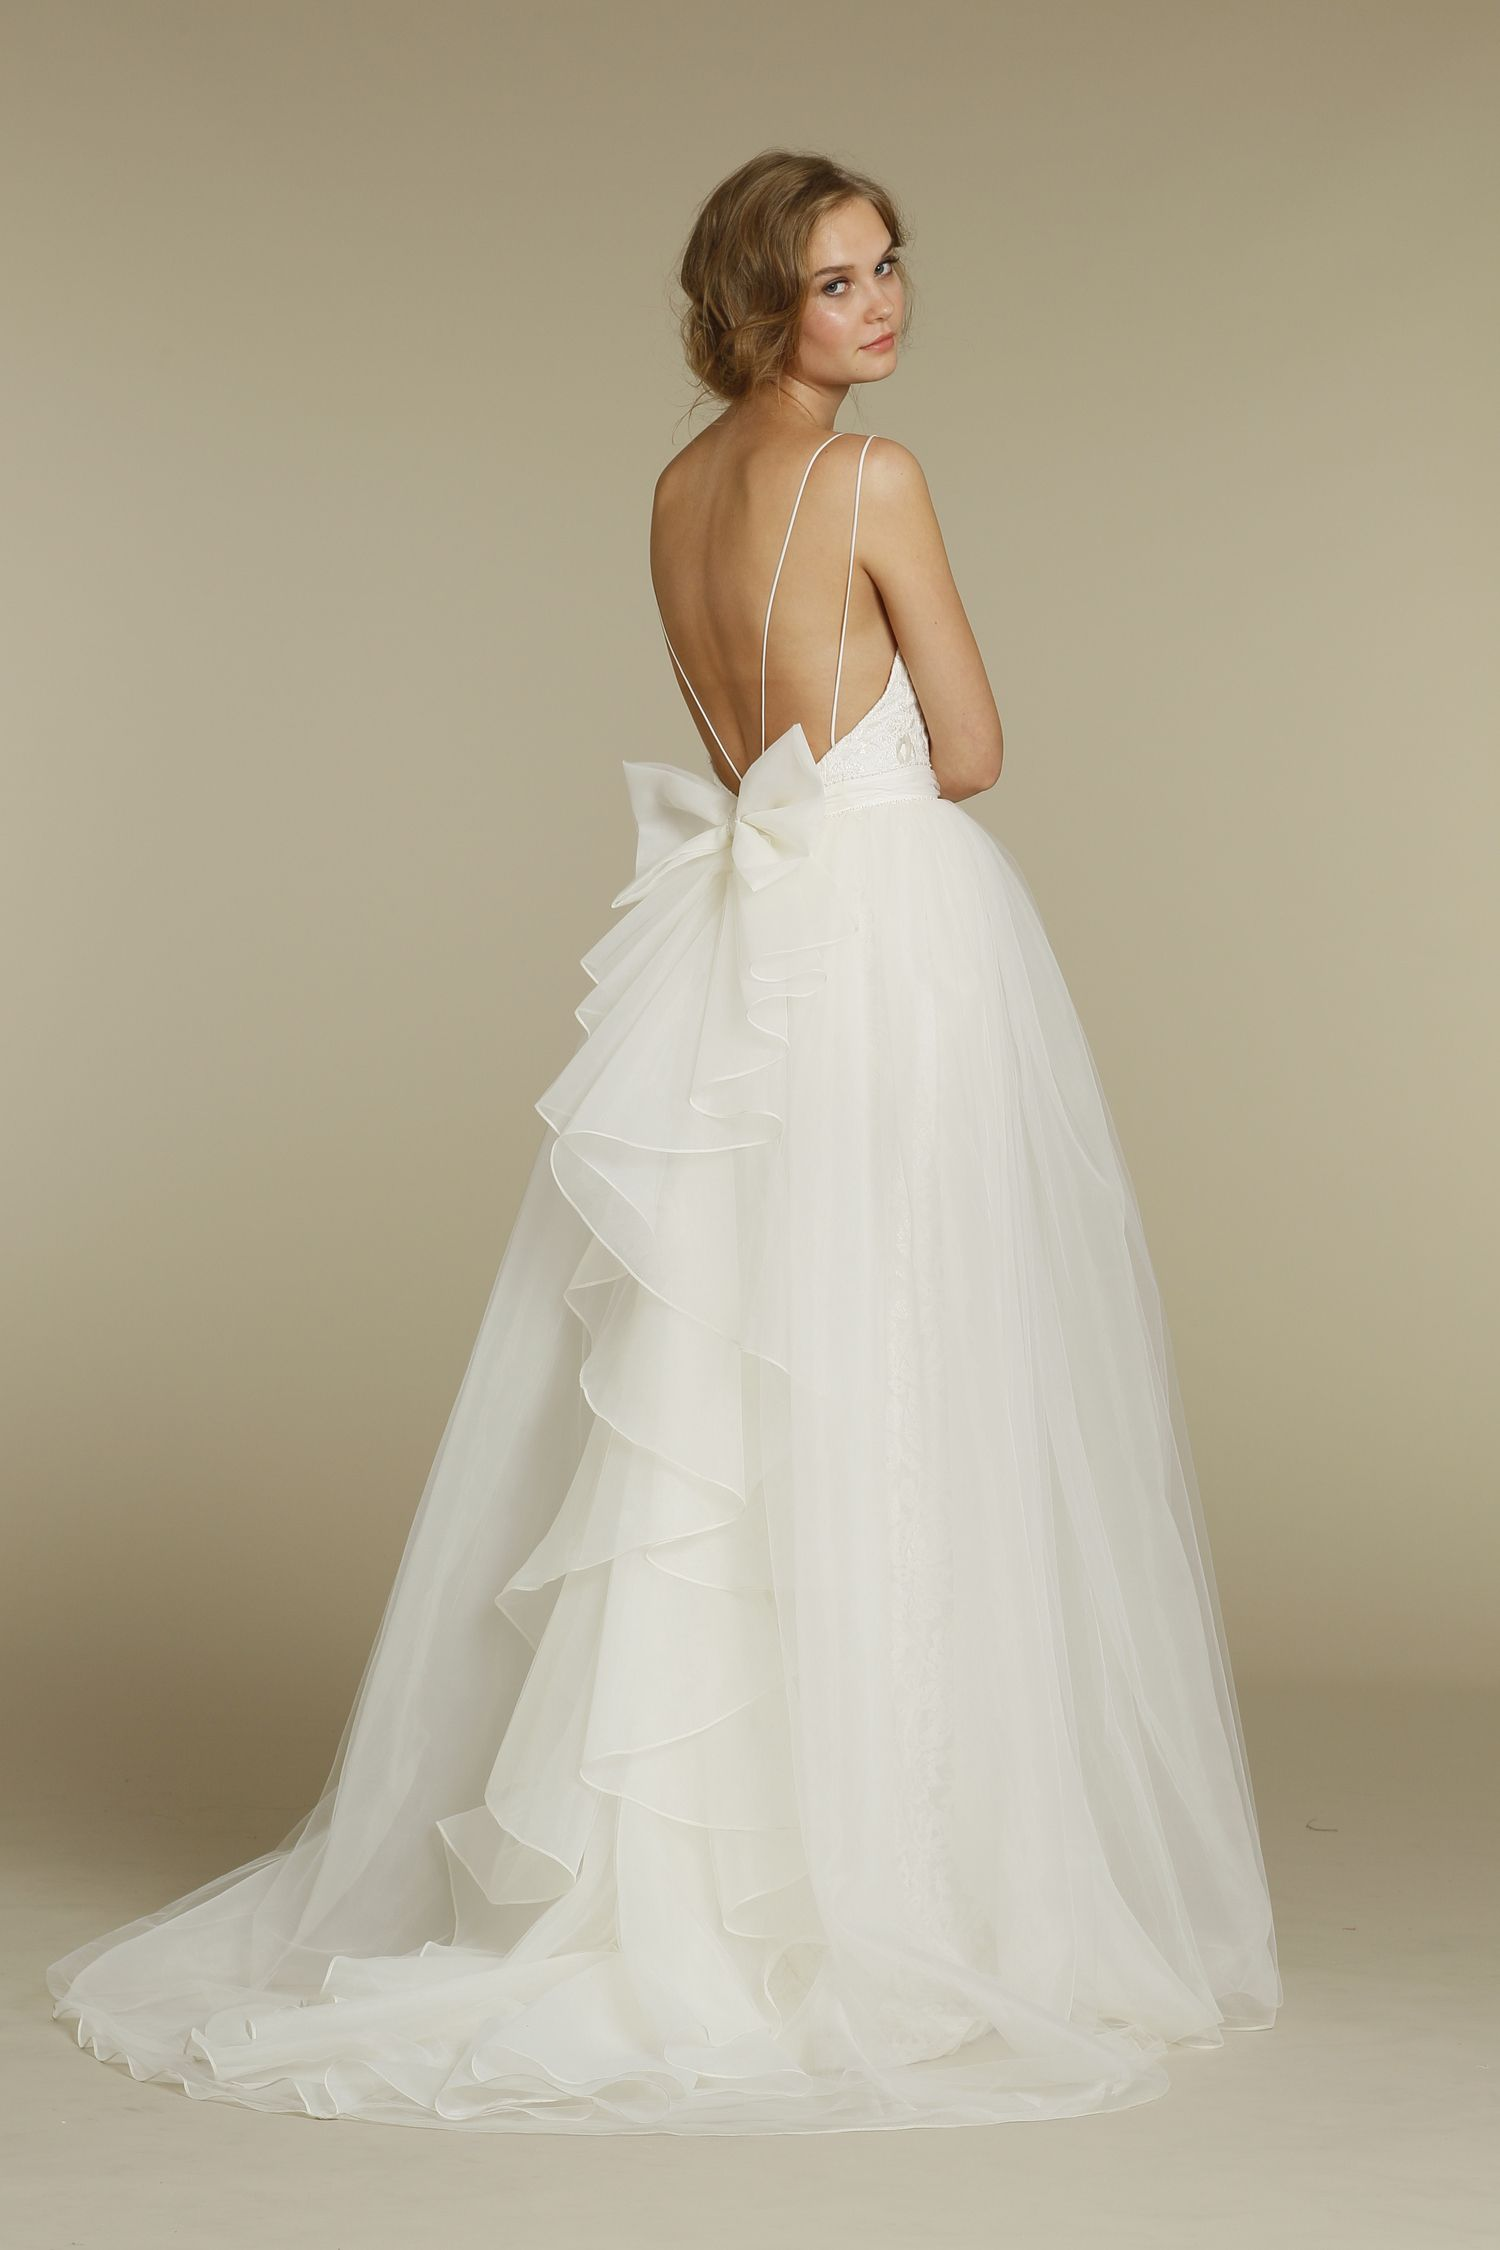 Wedding dress with bow on back  Perfect white dress  Beautiful Wedding and Bridal dresses